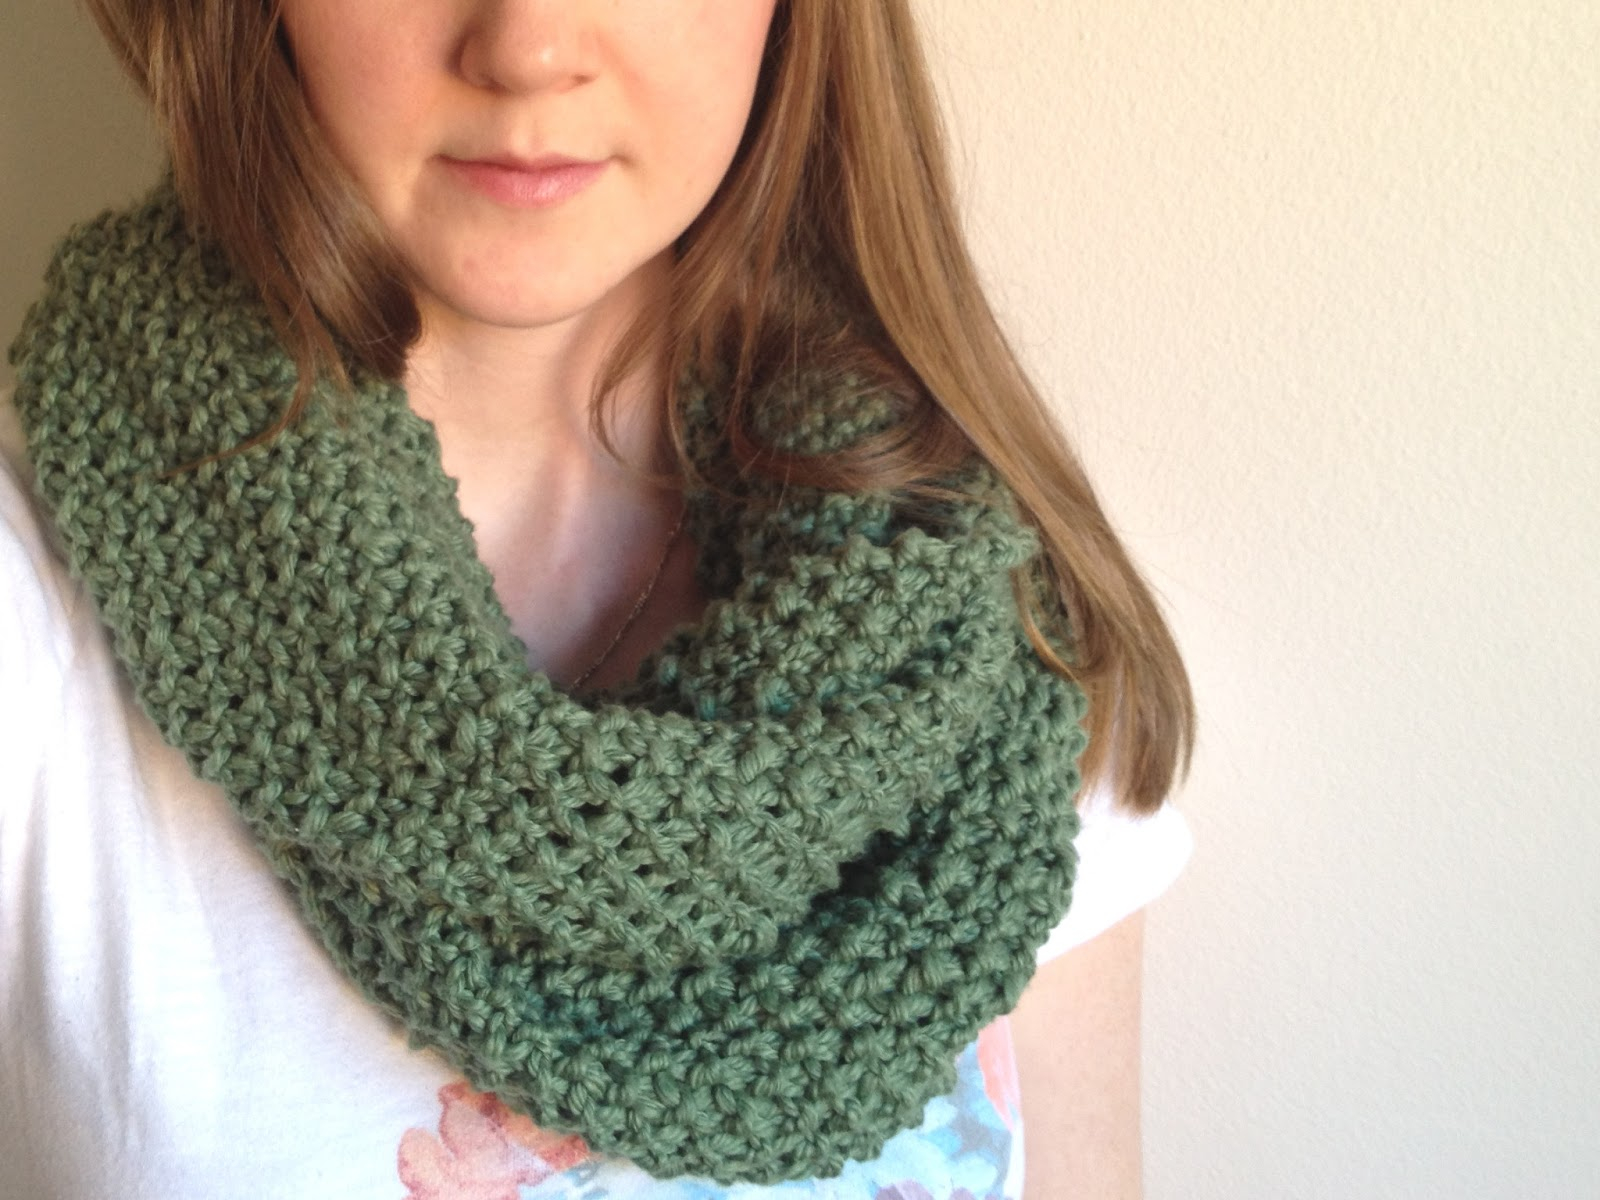 Moss Stitch Scarf Knitting Pattern Tinselmint Free Infinity Scarf Pattern For Beginners